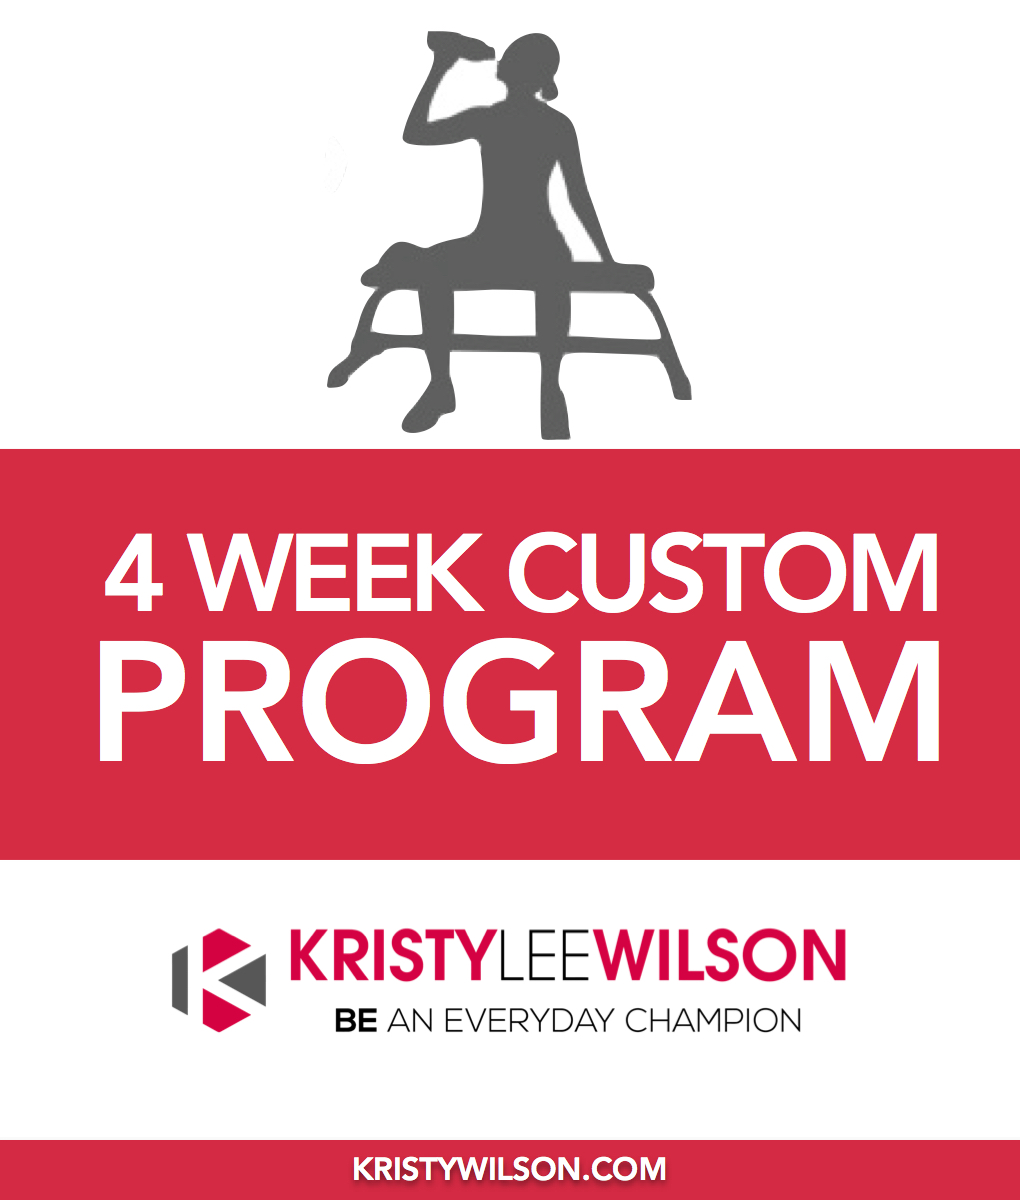 4 Week Custom Training Program  Kristy Lee Wilson. How To Build A Trade Show Booth. Divorce Lawyers Columbus Ohio. Start A Bank Account With No Money. Microsoft Device Management Texas A&m School. Santander Consumer Finance Feline Pu Surgery. Enterprise Website Design Orkin Birmingham Al. Carpet Cleaning Naperville Il. Retirement Annuities Explained